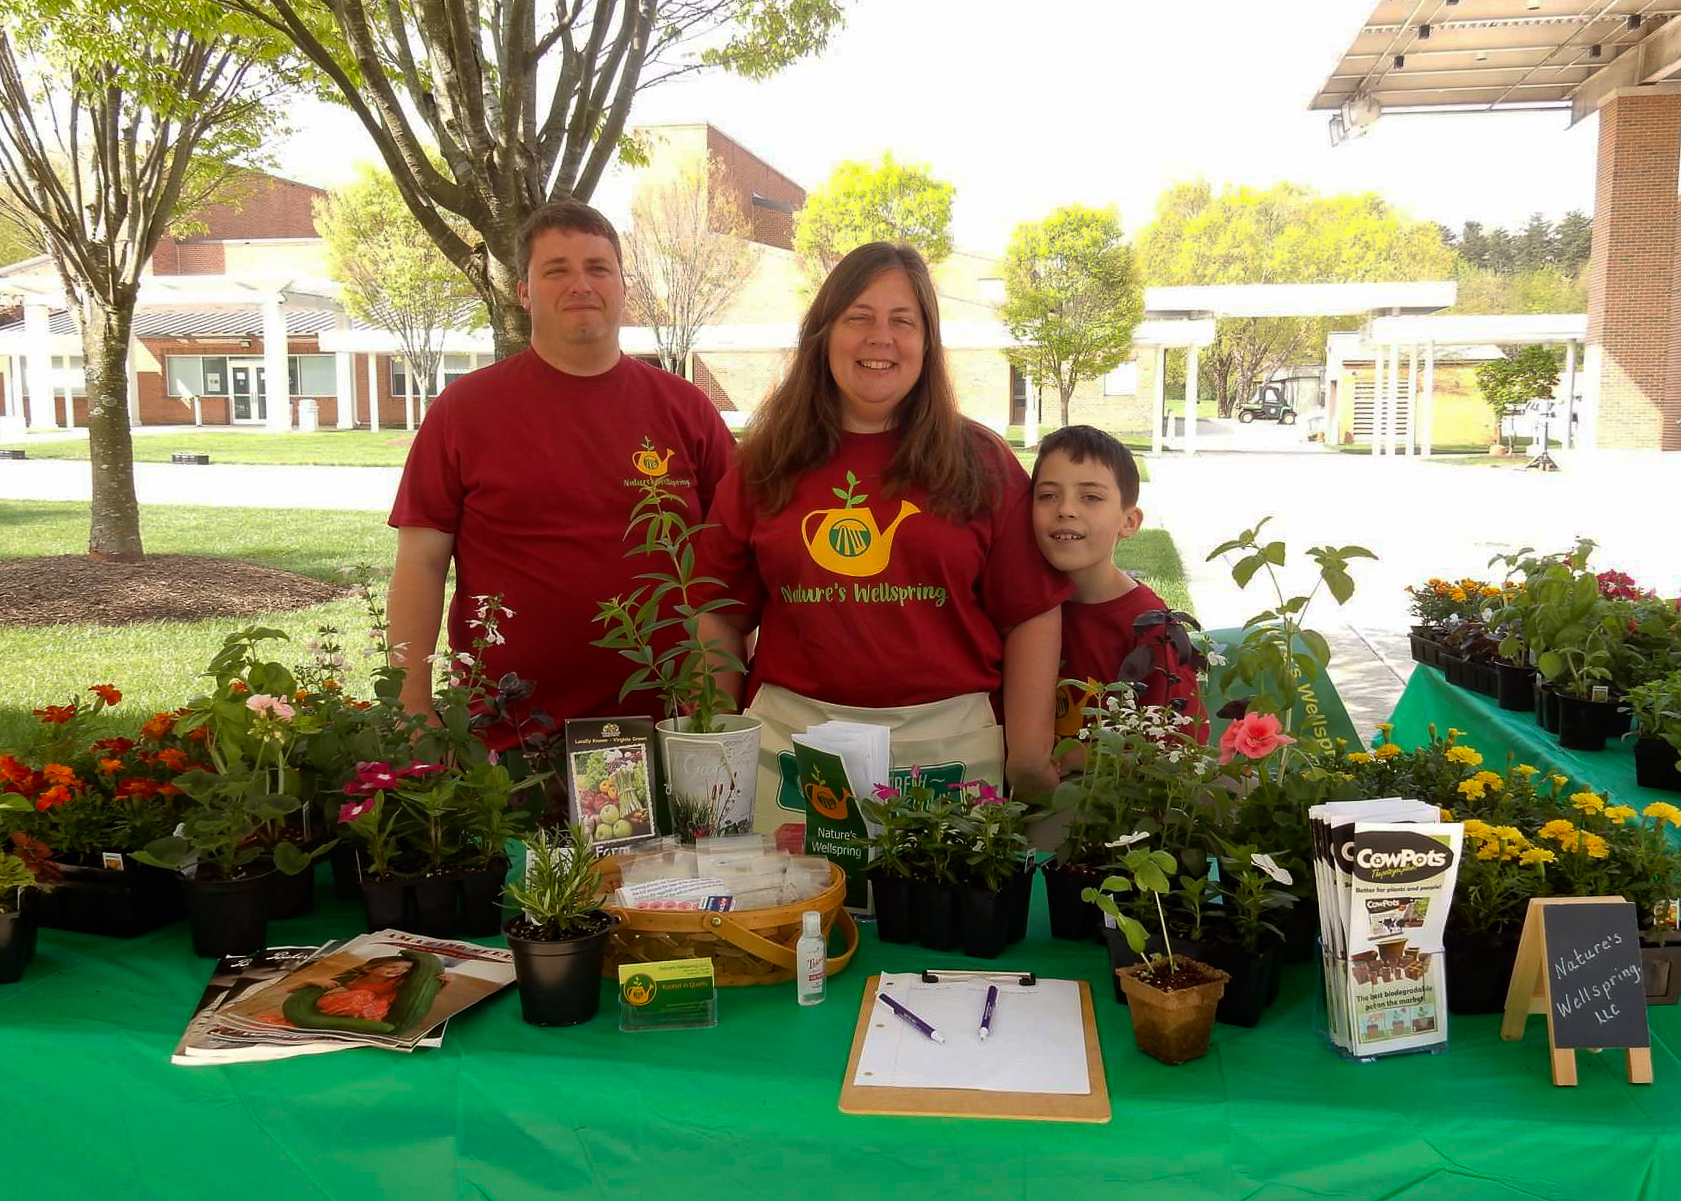 A Family Stands At A Farmer's Market Booth.